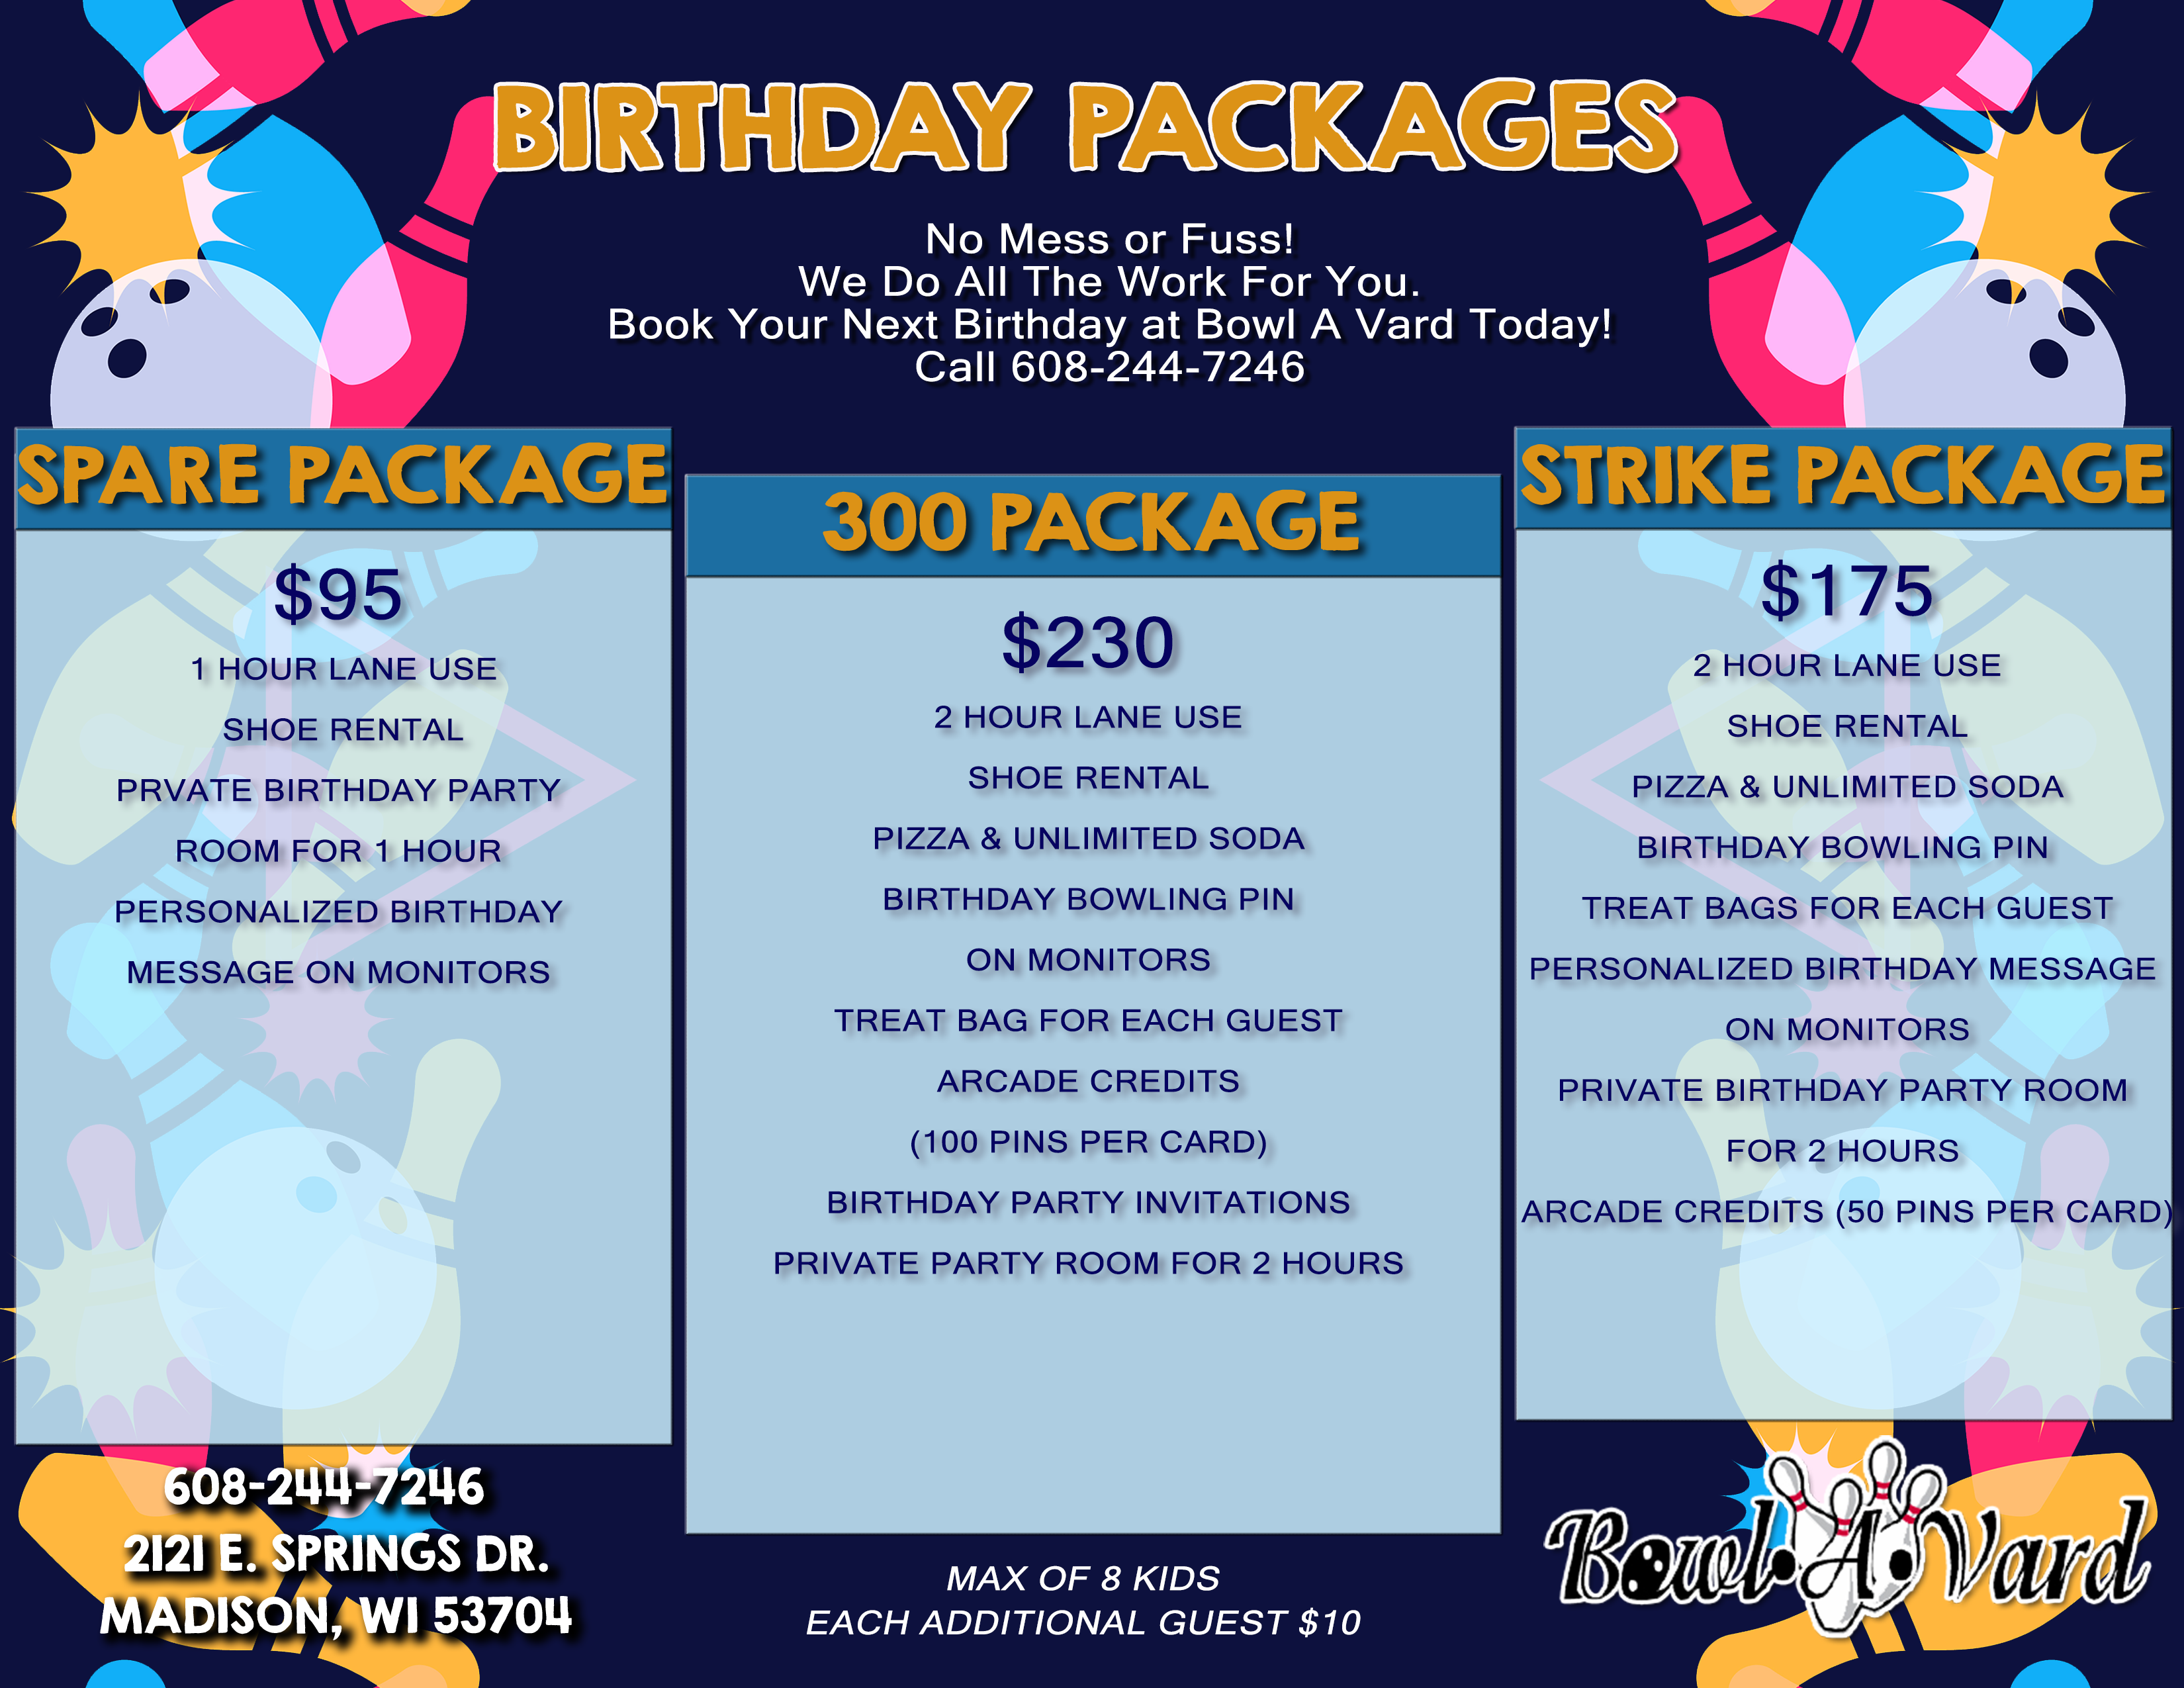 Kid's Birthday Packages No mess or fuss! We do all the work for you.  Book your next birthday at Bowl A Vard today. Call 608-244-7246. spare package $95 1 hour lane use shoe rental private birthday party room for 1 hour personalized birthday message on monitors. 300 package $230 2 hour lane use shoe rental pizza and unlimited soda birthday bowling pin personalized birthday message on monitors treat bag for each guest arcade credits (100 pins per card) birthday party invitations private party room for 2 hours. strike package $175 2 hour lane use shoe rental pizza and unlimited soda birthday bowling pin treat bags for each guest personalized birthday message on monitors private birthday party room for 2 hours arcade credits (50 pins per card) 608-244-7246 2121 e. springs dr. madison, wi 53704. max of 8 kids each additional guest $10